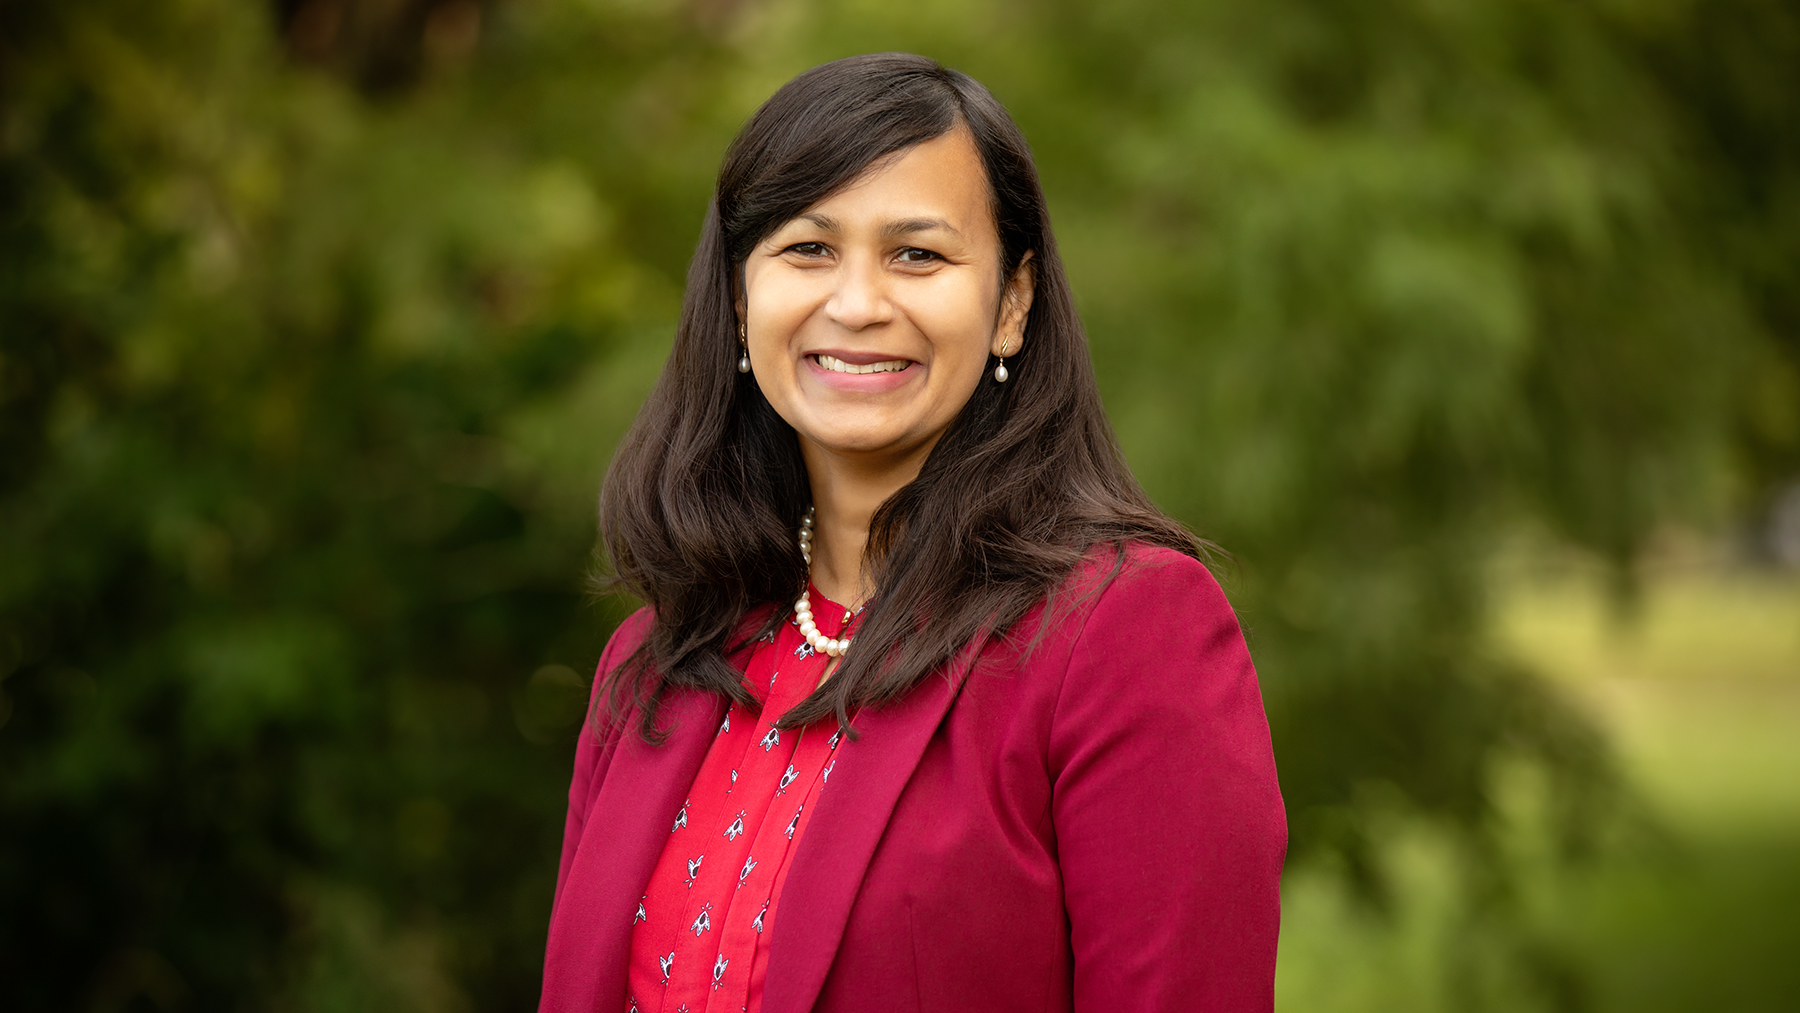 Comparative biosciences professor Aditi Das led a study of modified lipids that target the body's endocannabinoid system, which is involved in regulating pain and inflammation.  Photo by L. Brian Stauffer